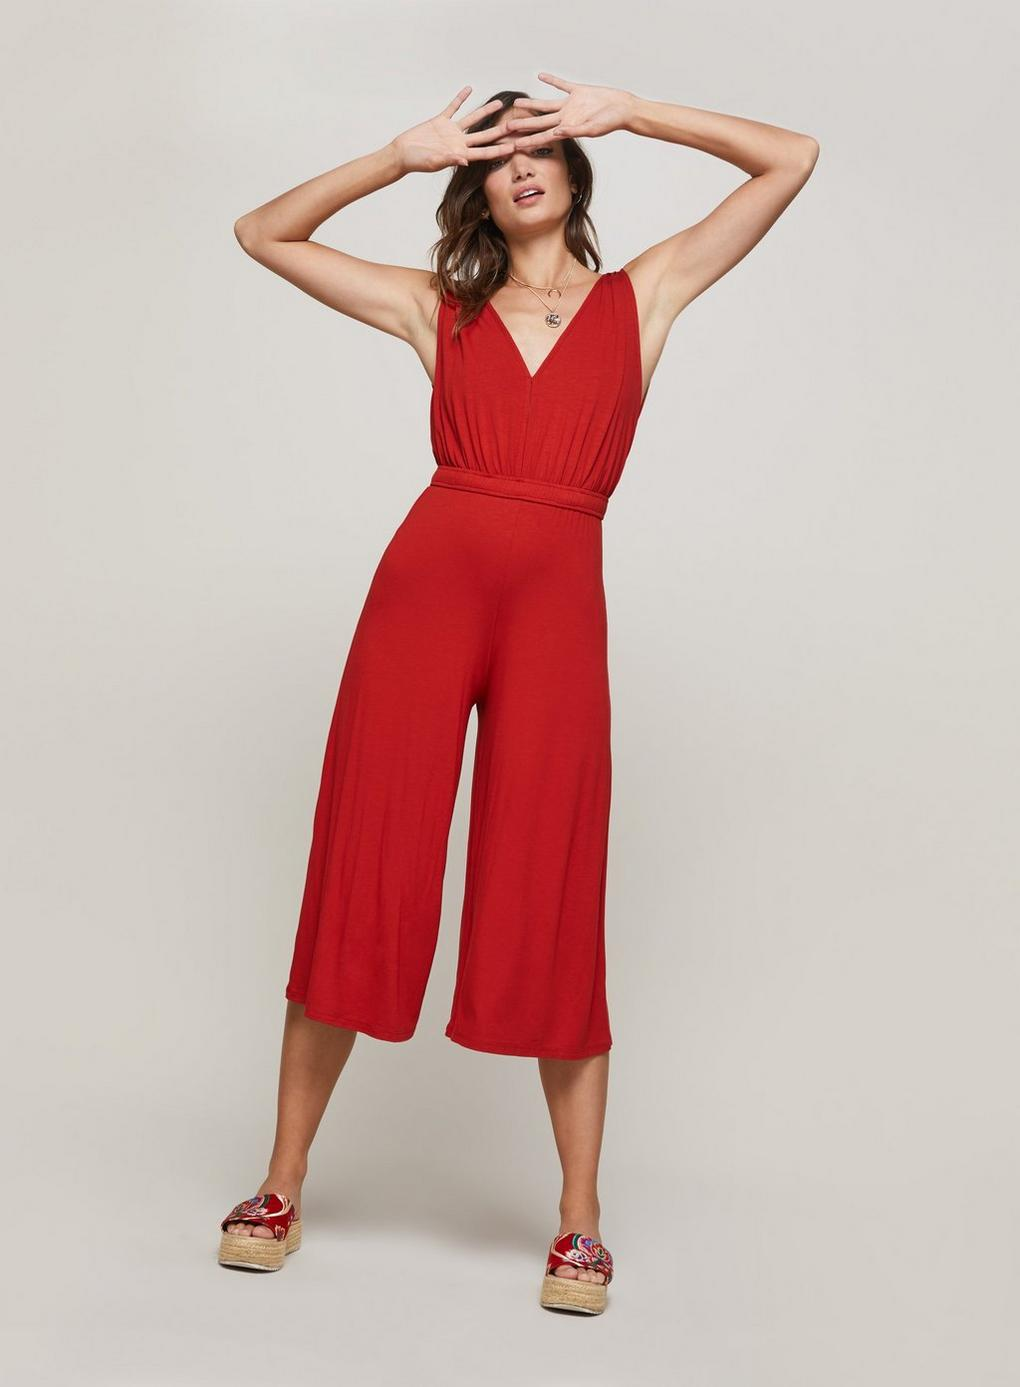 789dcd13ec0 Miss Selfridge Rust Jumpsuit in Red - Lyst